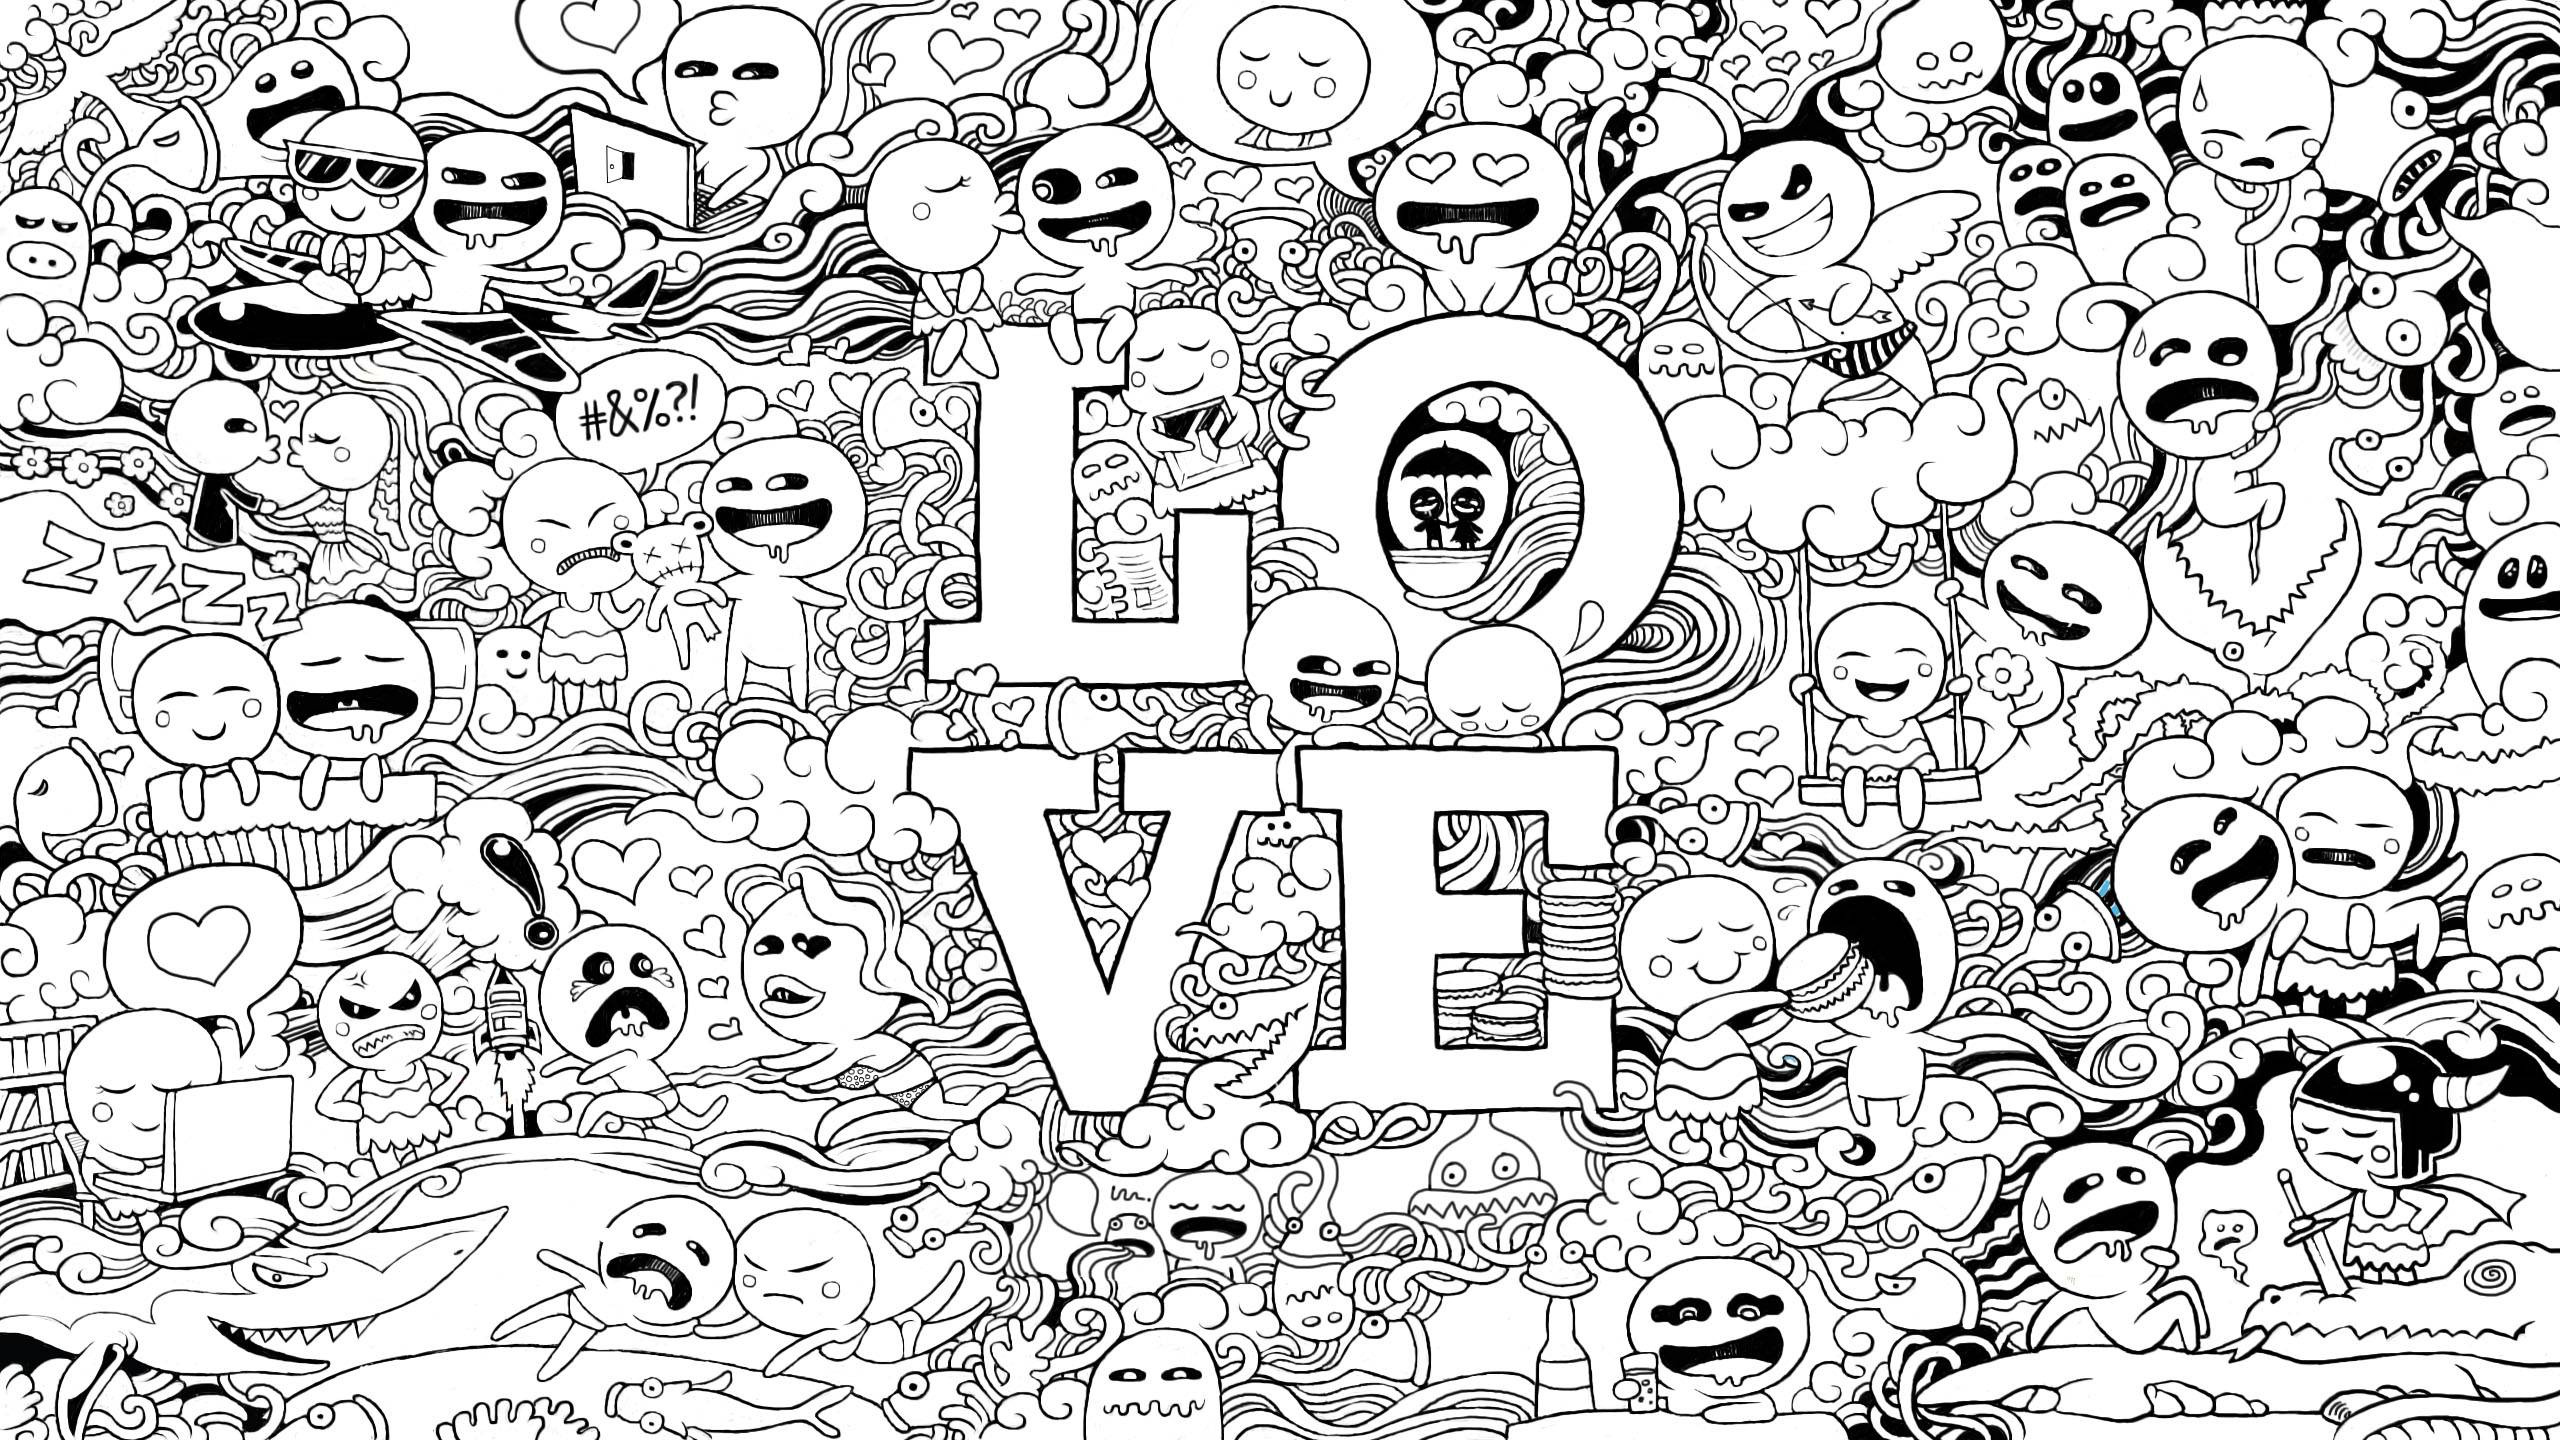 Doodle wallpapers wallpaper cave for Doodle art free